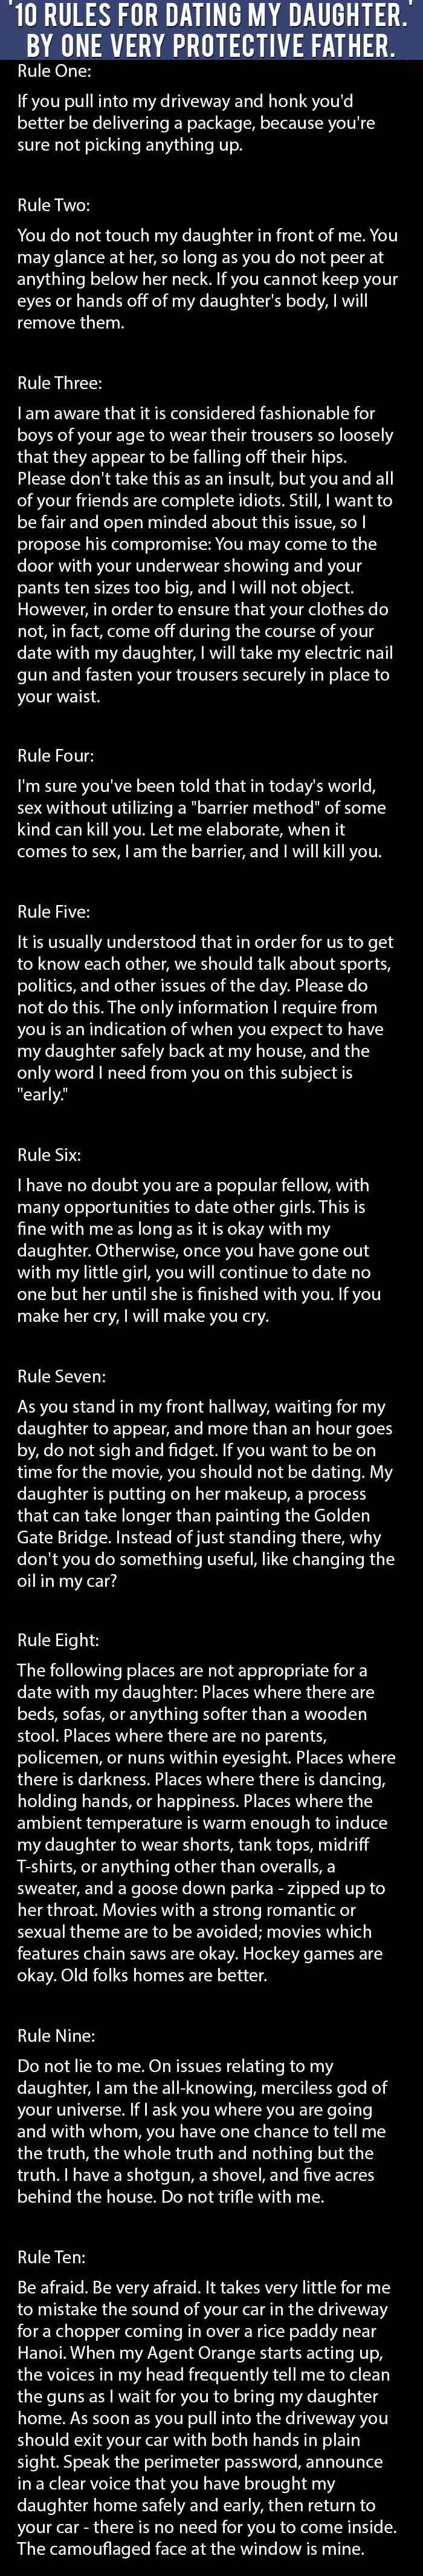 rules on dating a friends sister Rules on dating a friends sister sure, this may be a bit extreme, but it happens in some circles dating within your friend group can limit your options yea - hell yea.